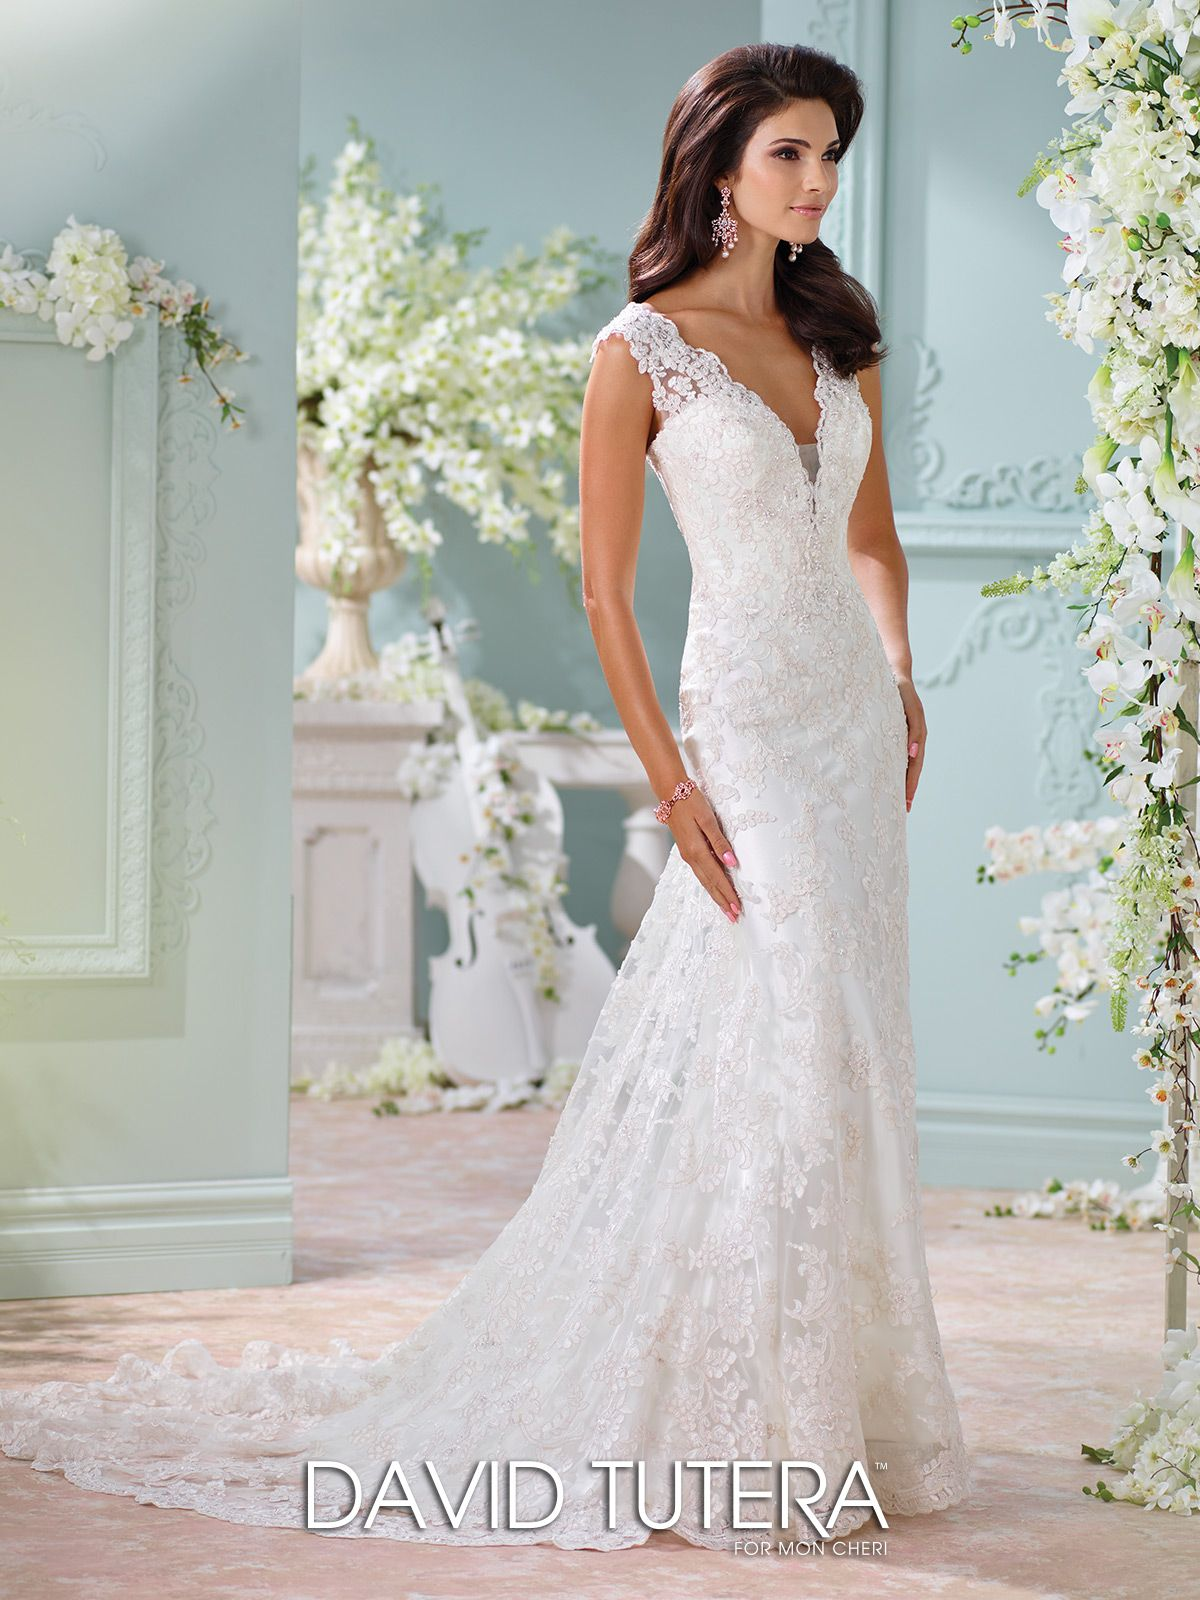 Unique wedding dresses fall 2018 martin thornburg david tutera david tutera for mon cheri style 116204 dayton is a beautiful wedding dress from the spring 2016 collection click here for more information on this dress junglespirit